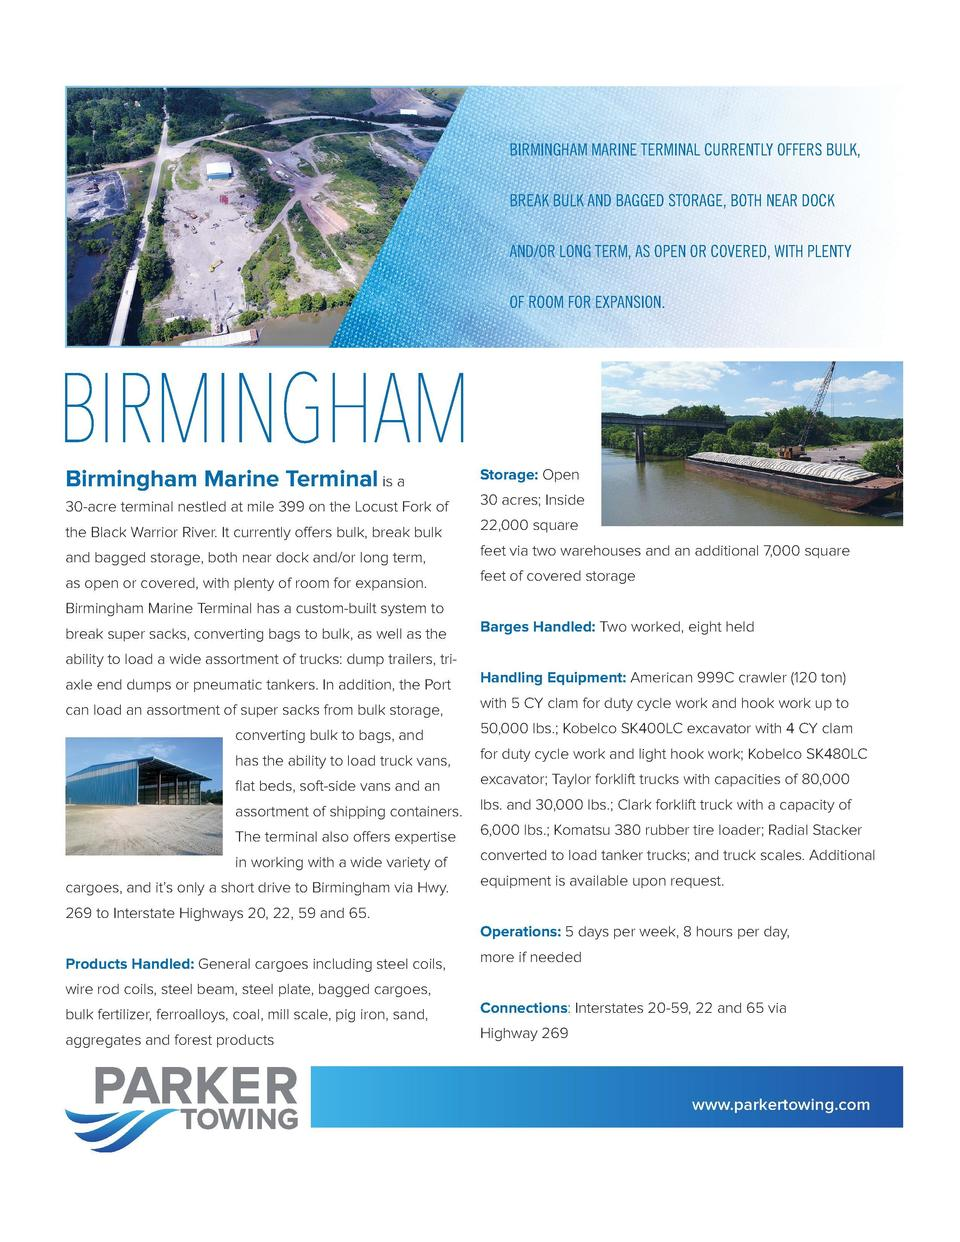 BIRMINGHAM MARINE TERMINAL CURRENTLY OFFERS BULK, BREAK BULK AND BAGGED STORAGE, BOTH NEAR DOCK  THIS PORT BOASTS 25,000 S...